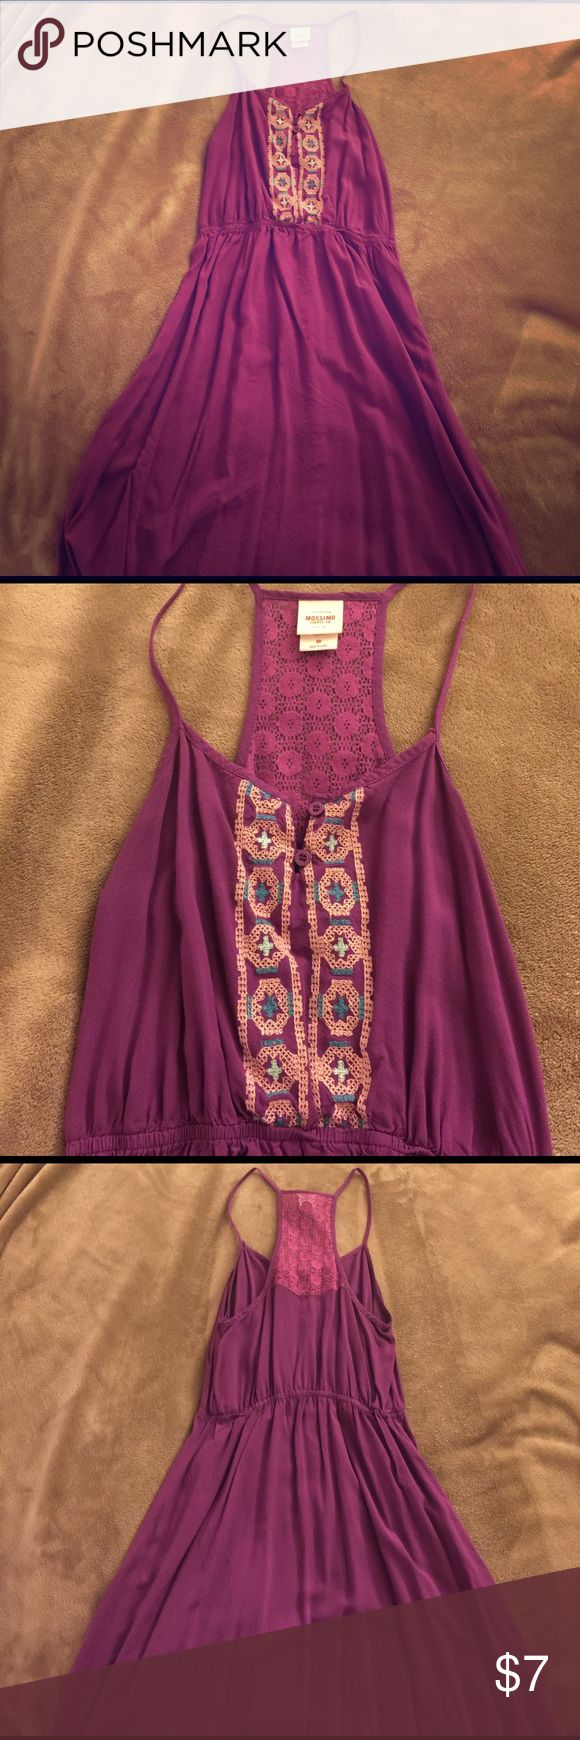 💜Purple boho racerback sundress 💜 Super cute short sundress. Brand is Mossimo by target. Great used condition. 💕 Mossimo Supply Co Dresses Mini